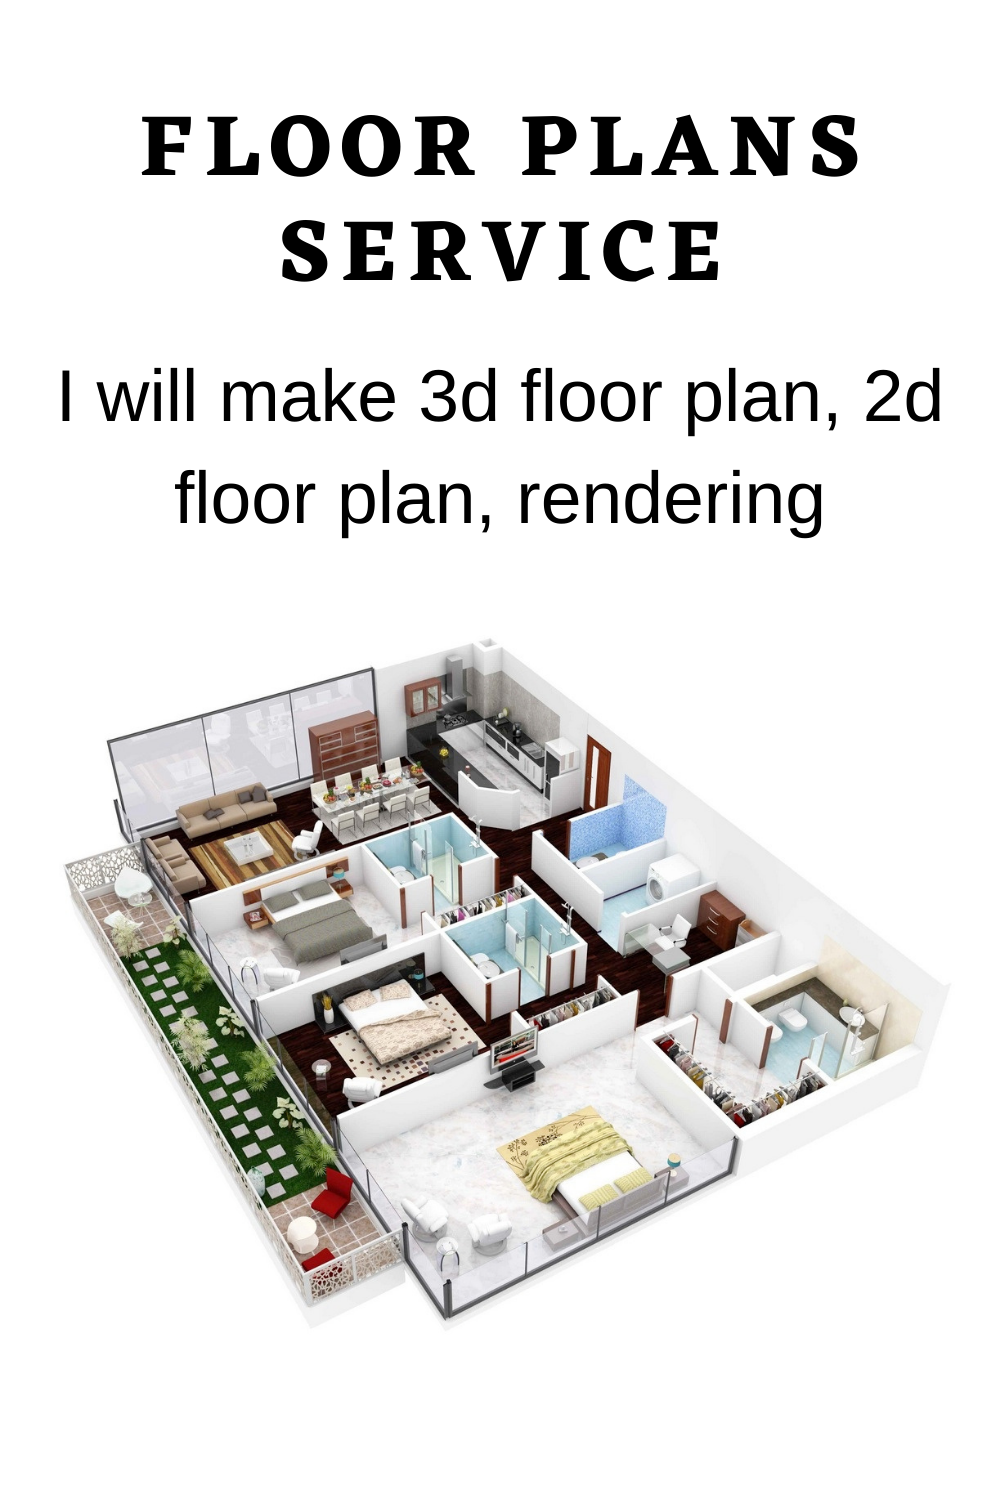 I Will Make 3d Floor Plan 2d Floor Plan Rendering Home Plans Flooring Ideas Farmhouse Plans Floor Plans One Level House Plans Floor Plans Ranch